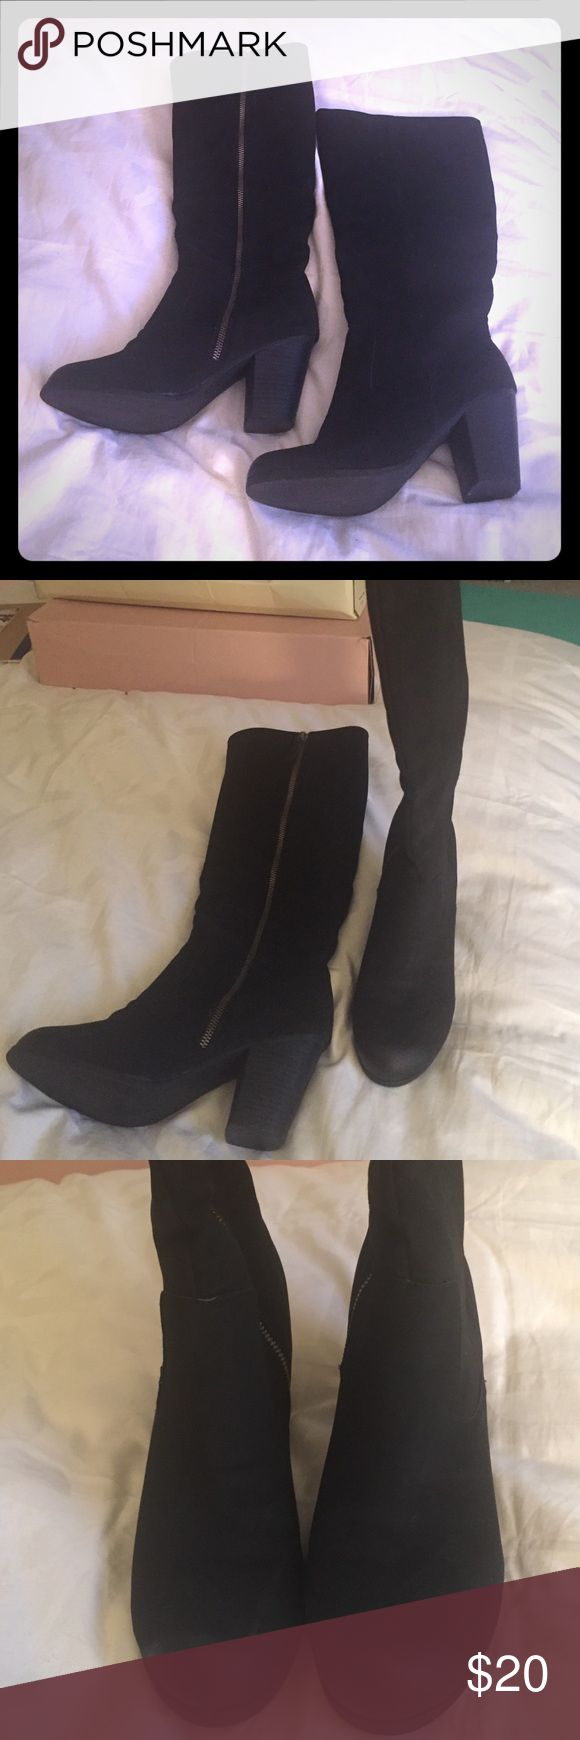 Tall Black Zip Up Boots Mossimo Keira tall black zip up boots. Only worn once! Mossimo Supply Co Shoes Heeled Boots